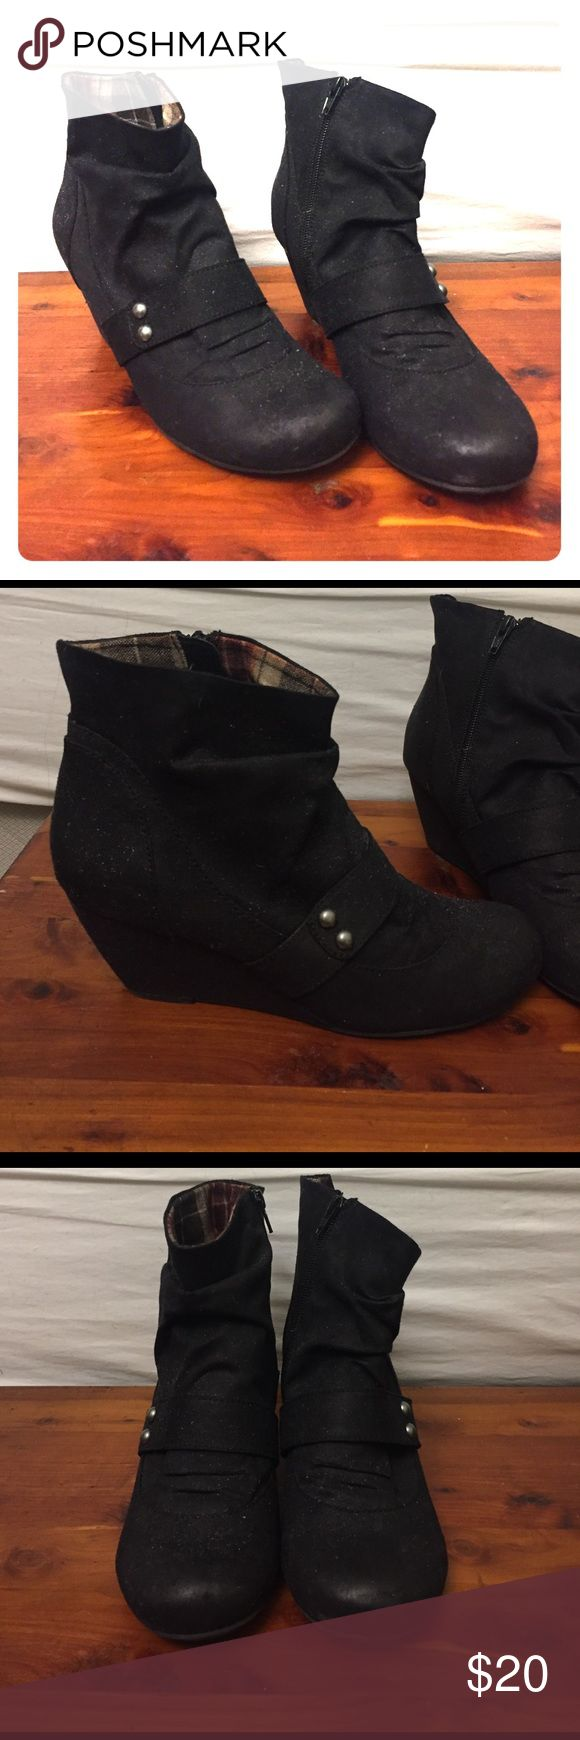 """Heeled booties 3"""" all black dress booties. Brushed silver accents on the outside, black zipper on the inside. The wedge makes them really comfortable, but I only wore them a few times and they're only very gently used. All man-made material, so they're perfect for going out and not having to worry about ruining them. 📍not Steve Madden, but I've seen similar styles there! Steve Madden Shoes Ankle Boots & Booties"""